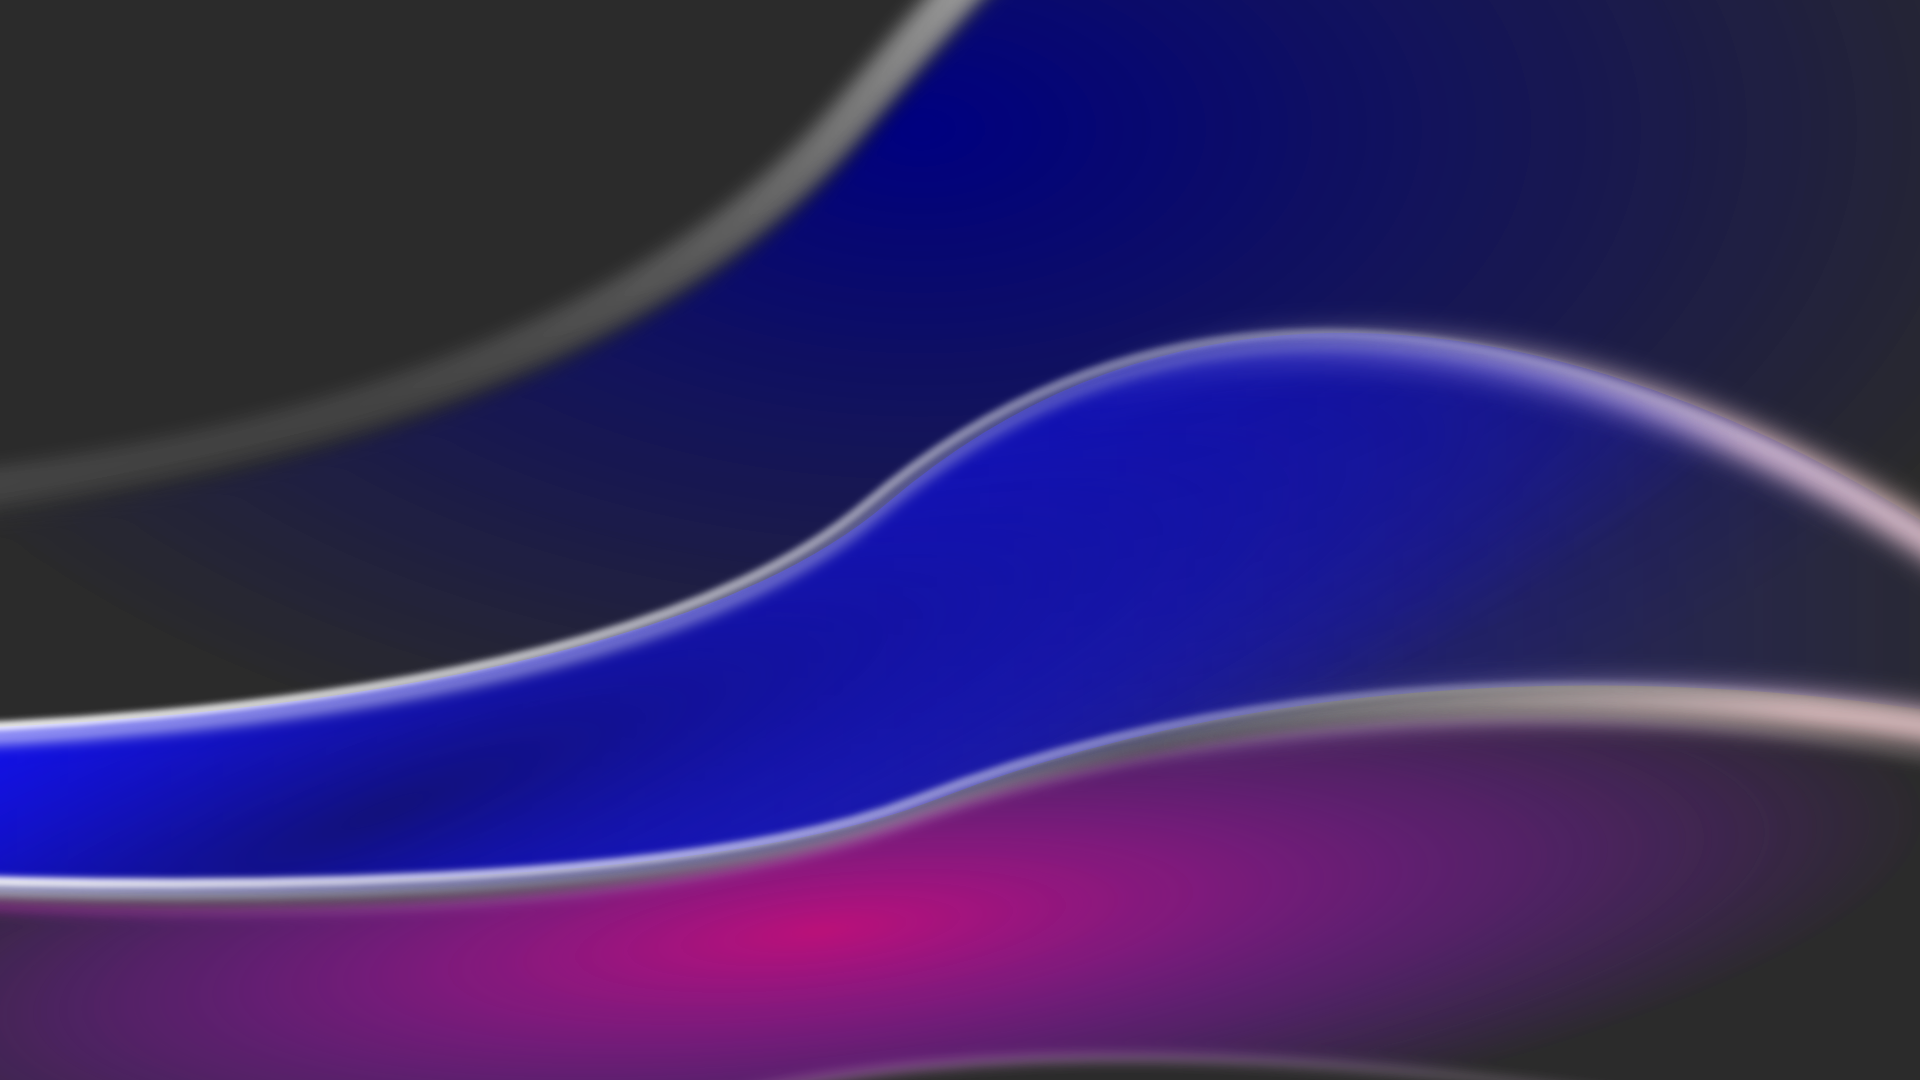 Set neon black waves as site background image